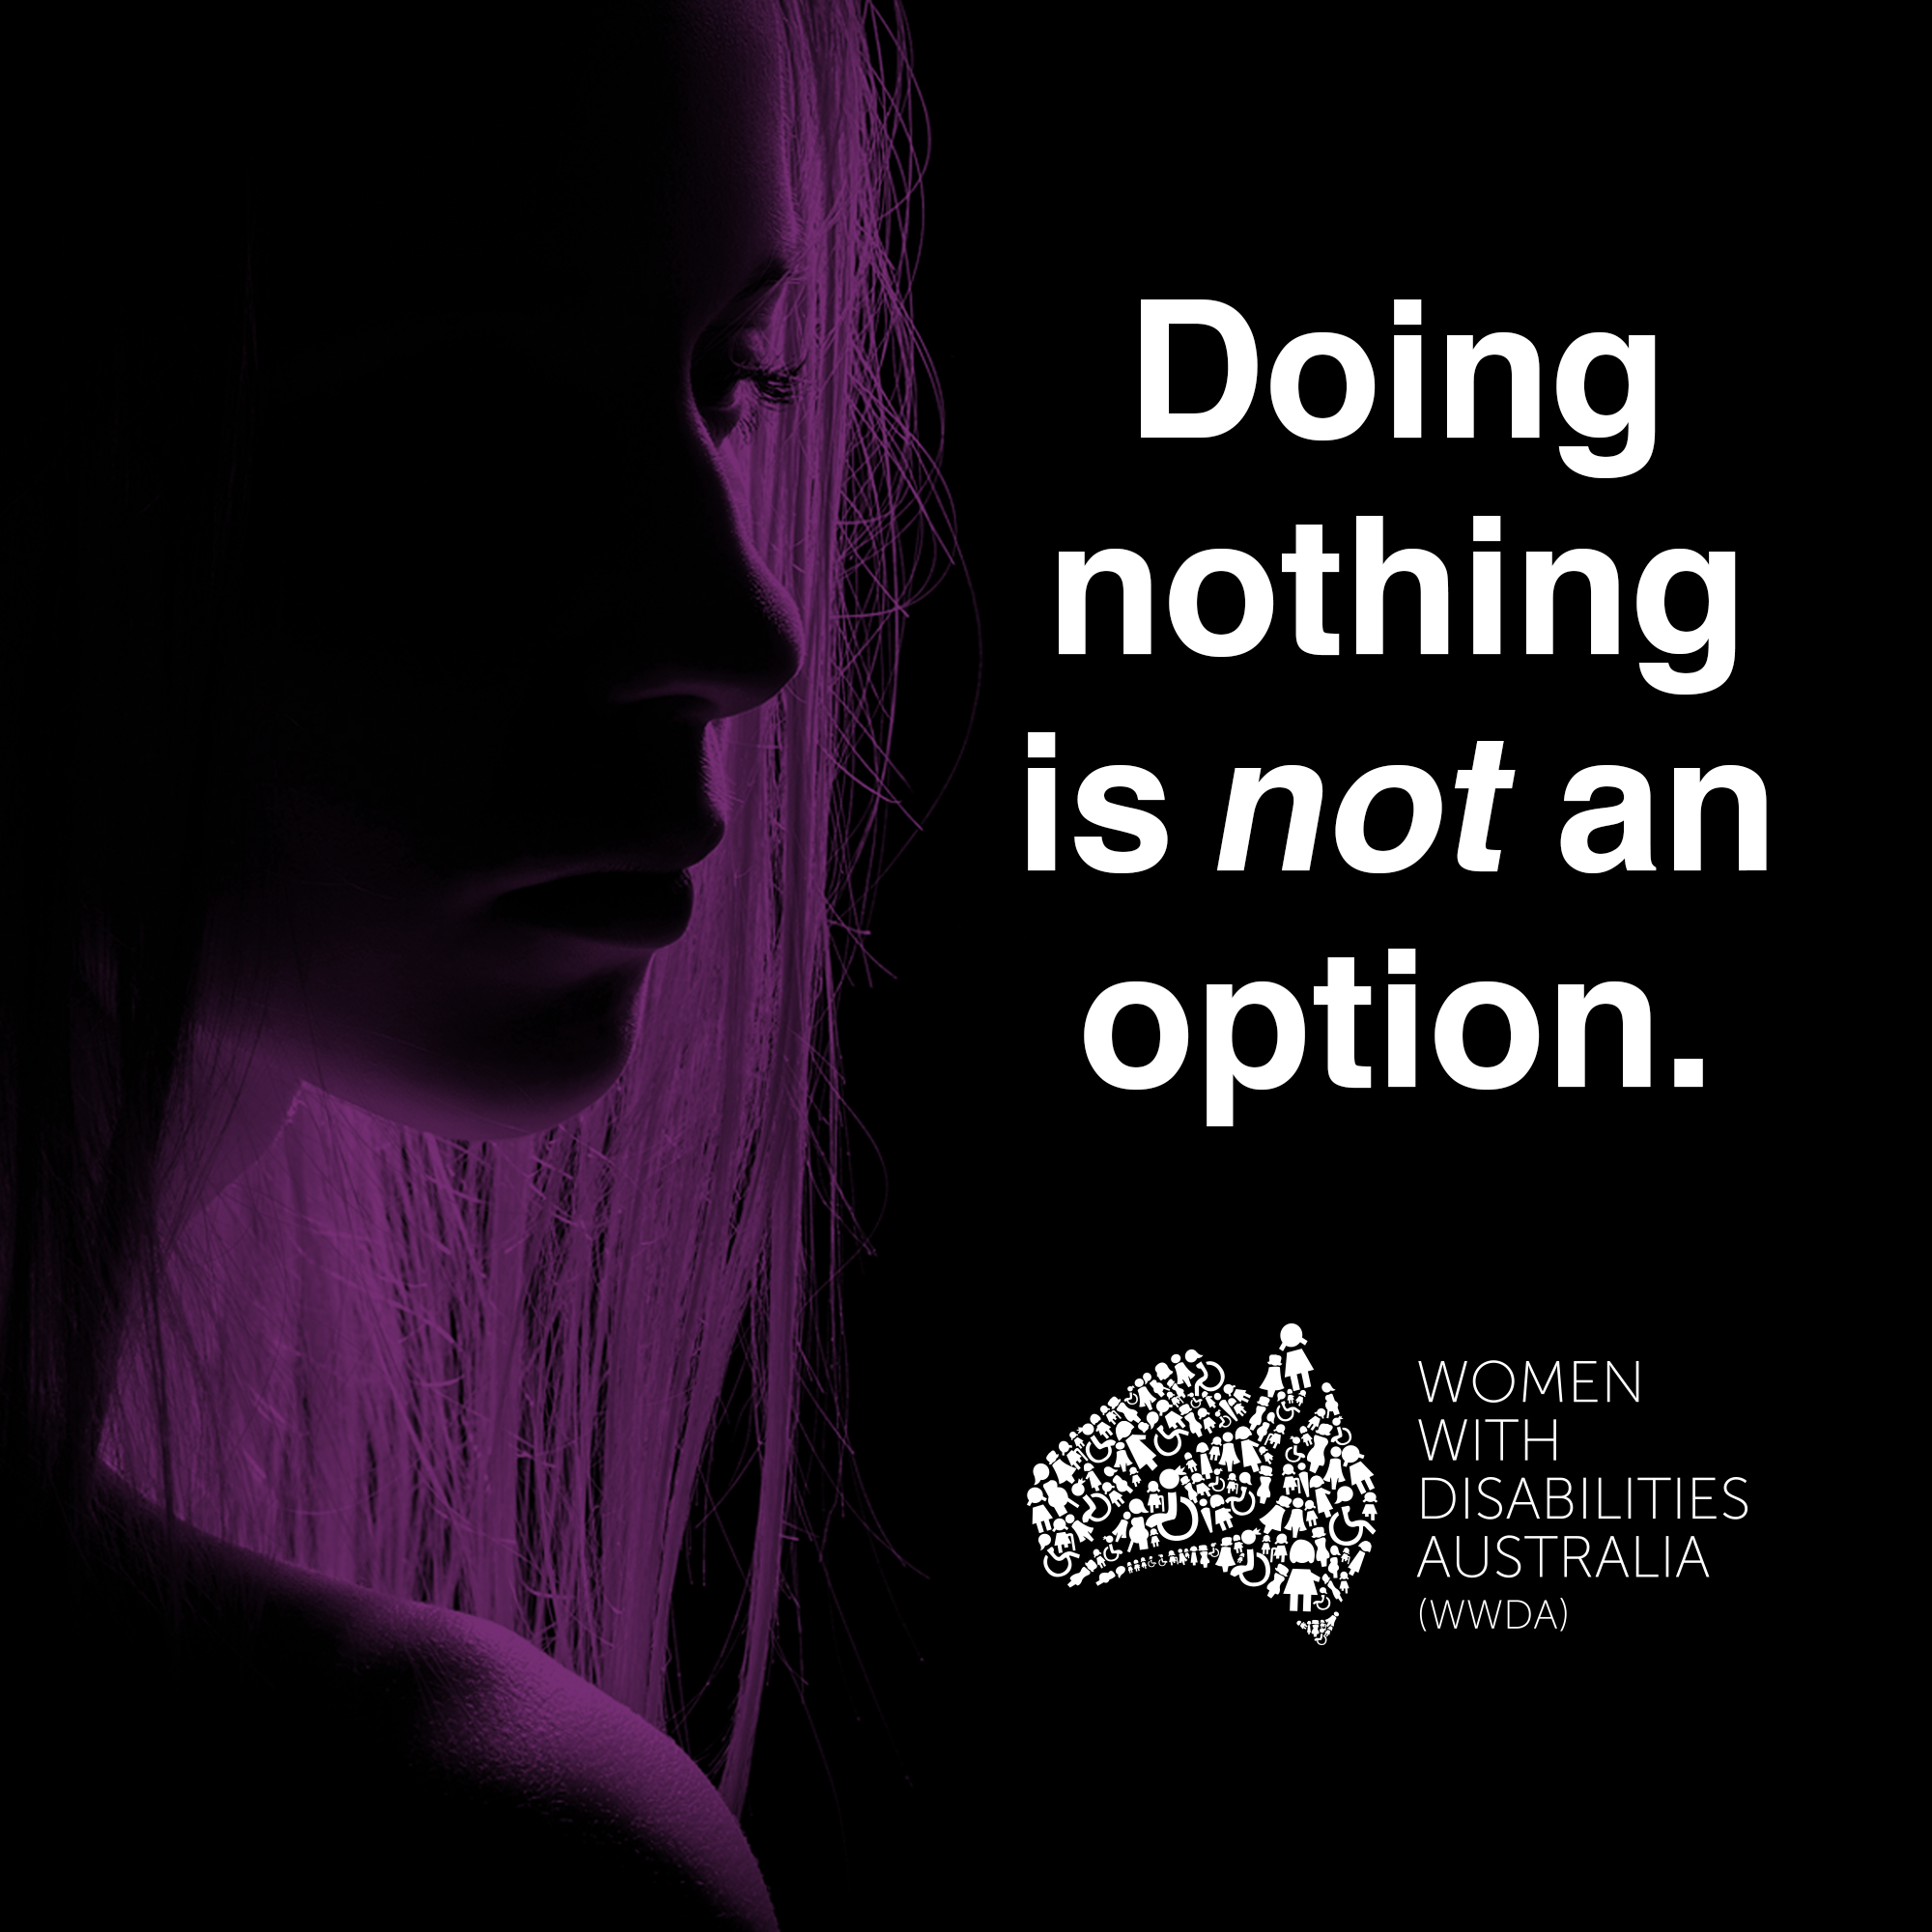 A solemn image of a woman's face and hair in profile, lit with purple lighting, against a black background. The words 'Doing nothing is not an option' appear in white type, centred above the Women with Disabilities Australia logo.